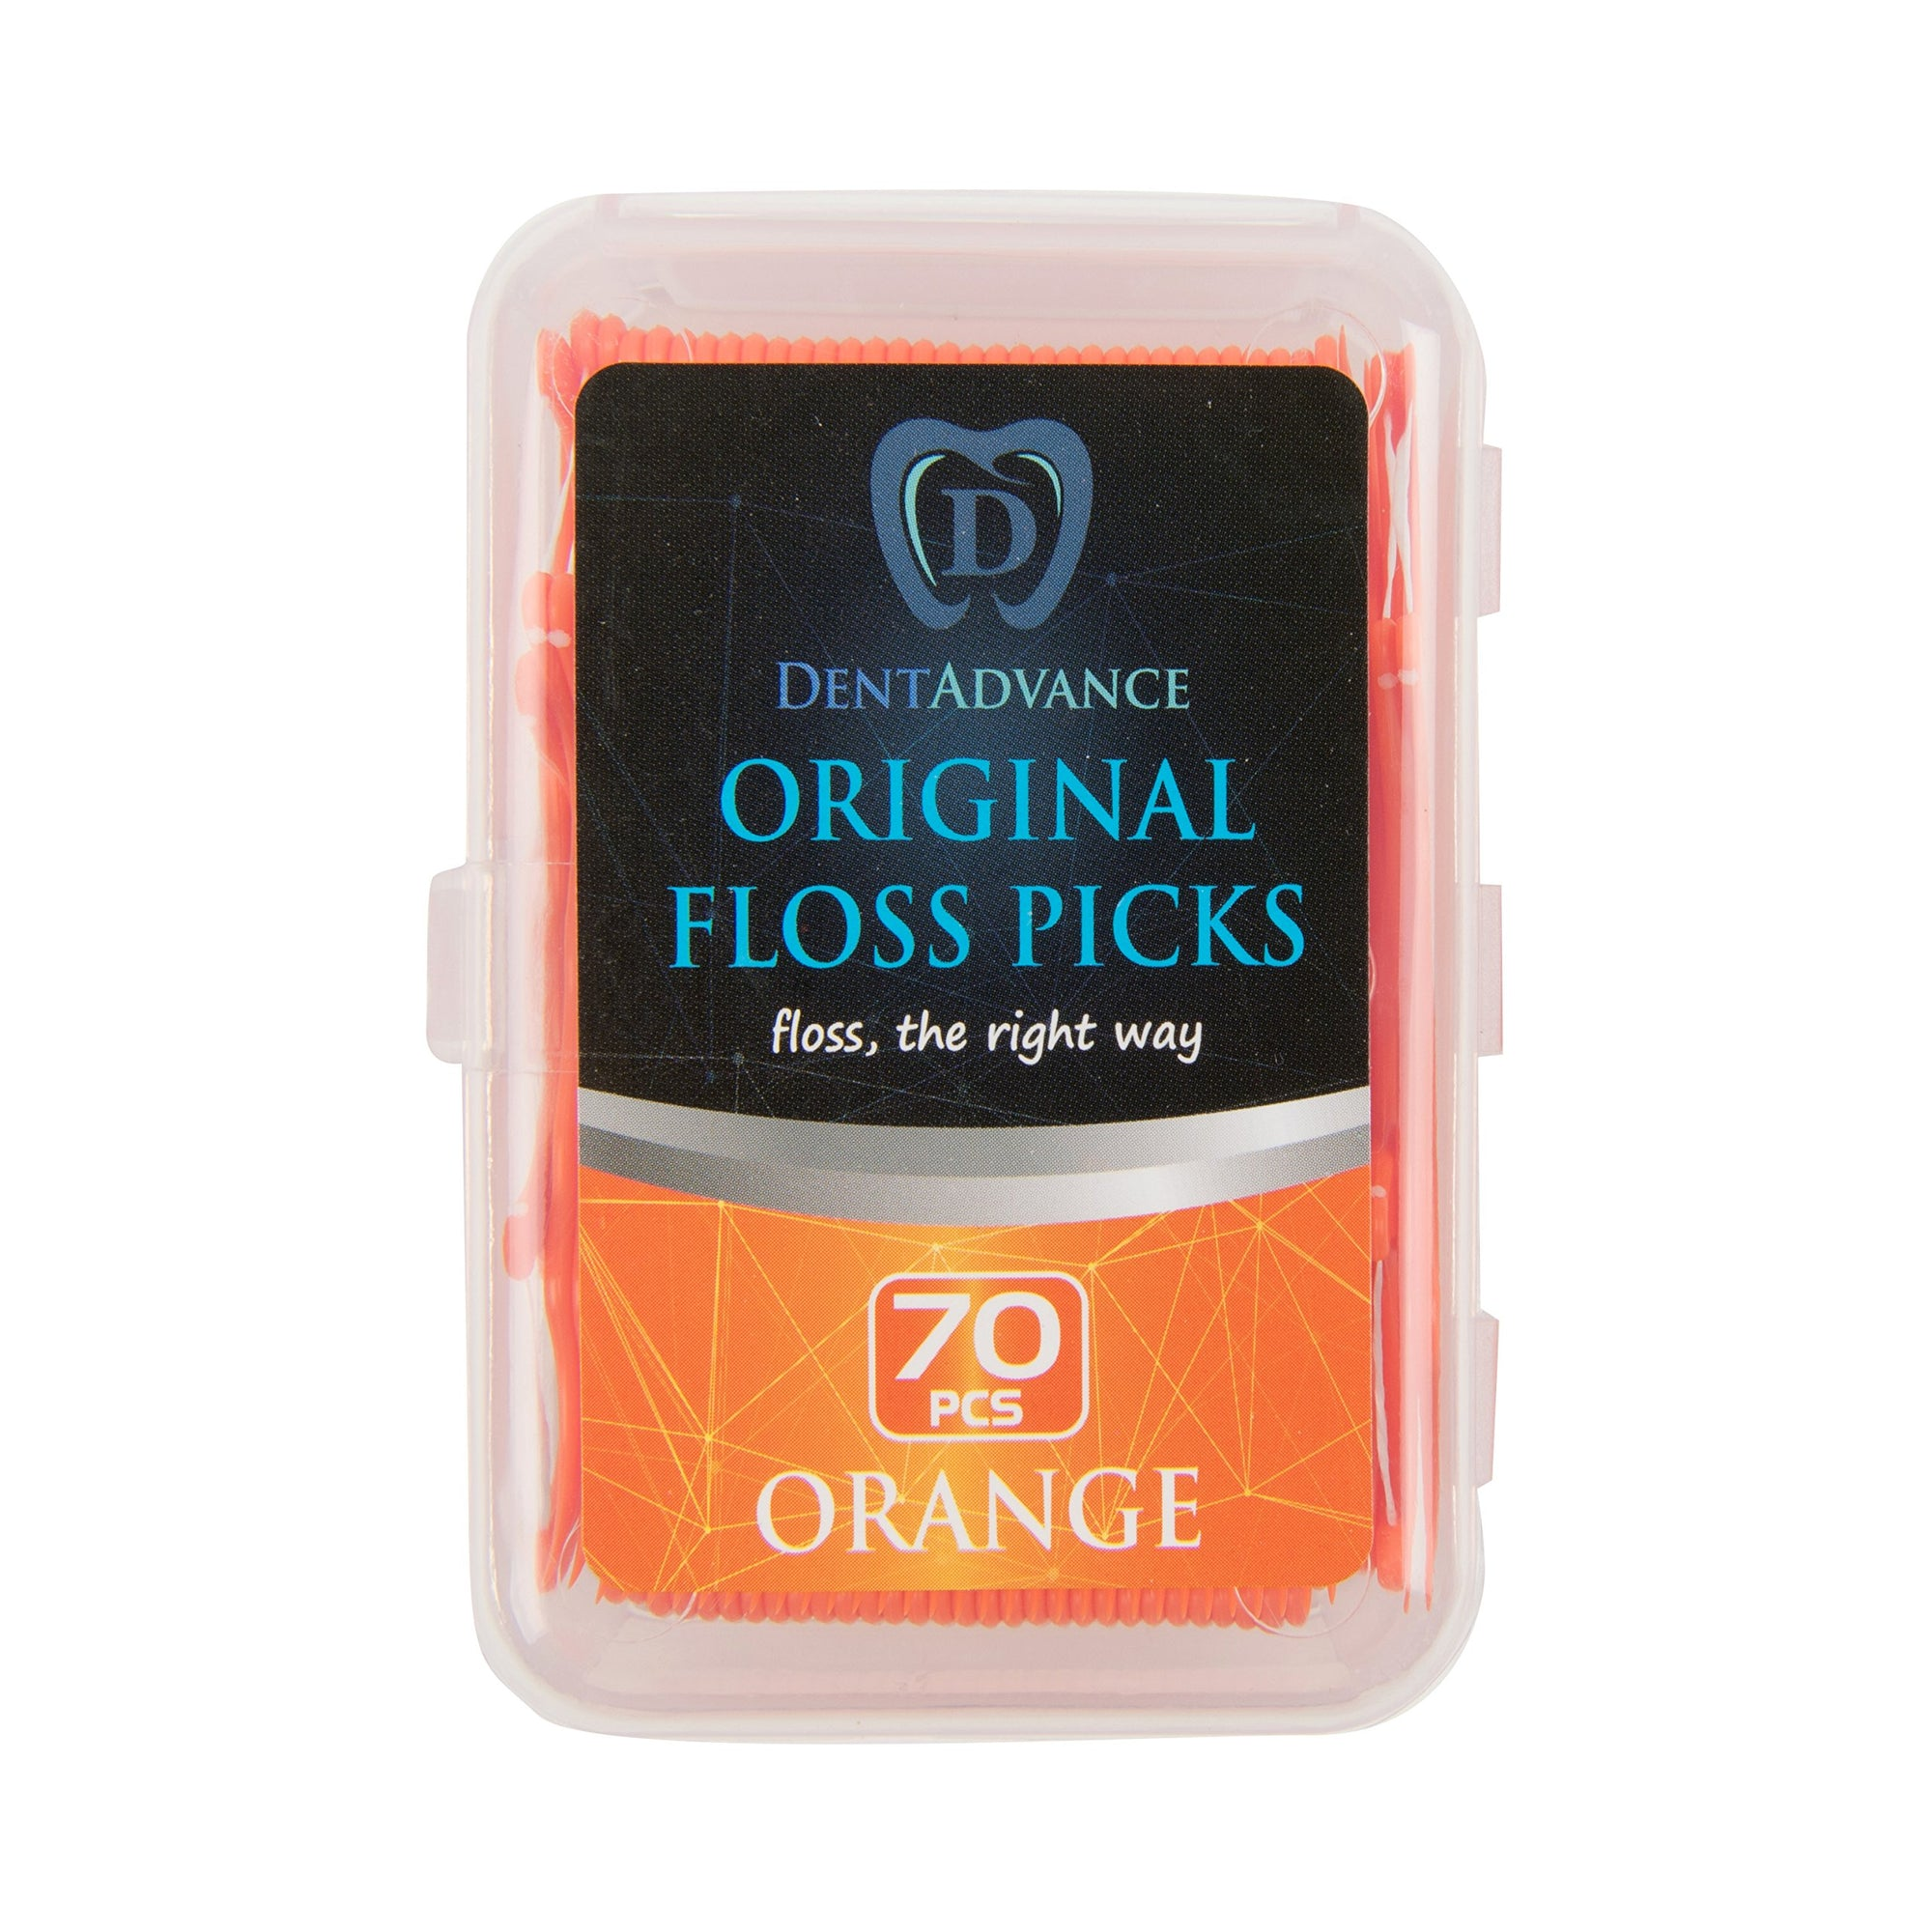 DentAdvance Original Dental Floss Picks - Easy Reach Back Teeth | Tooth Flossers | Orange, Unflavored, 70 ct, w/ Travel Case